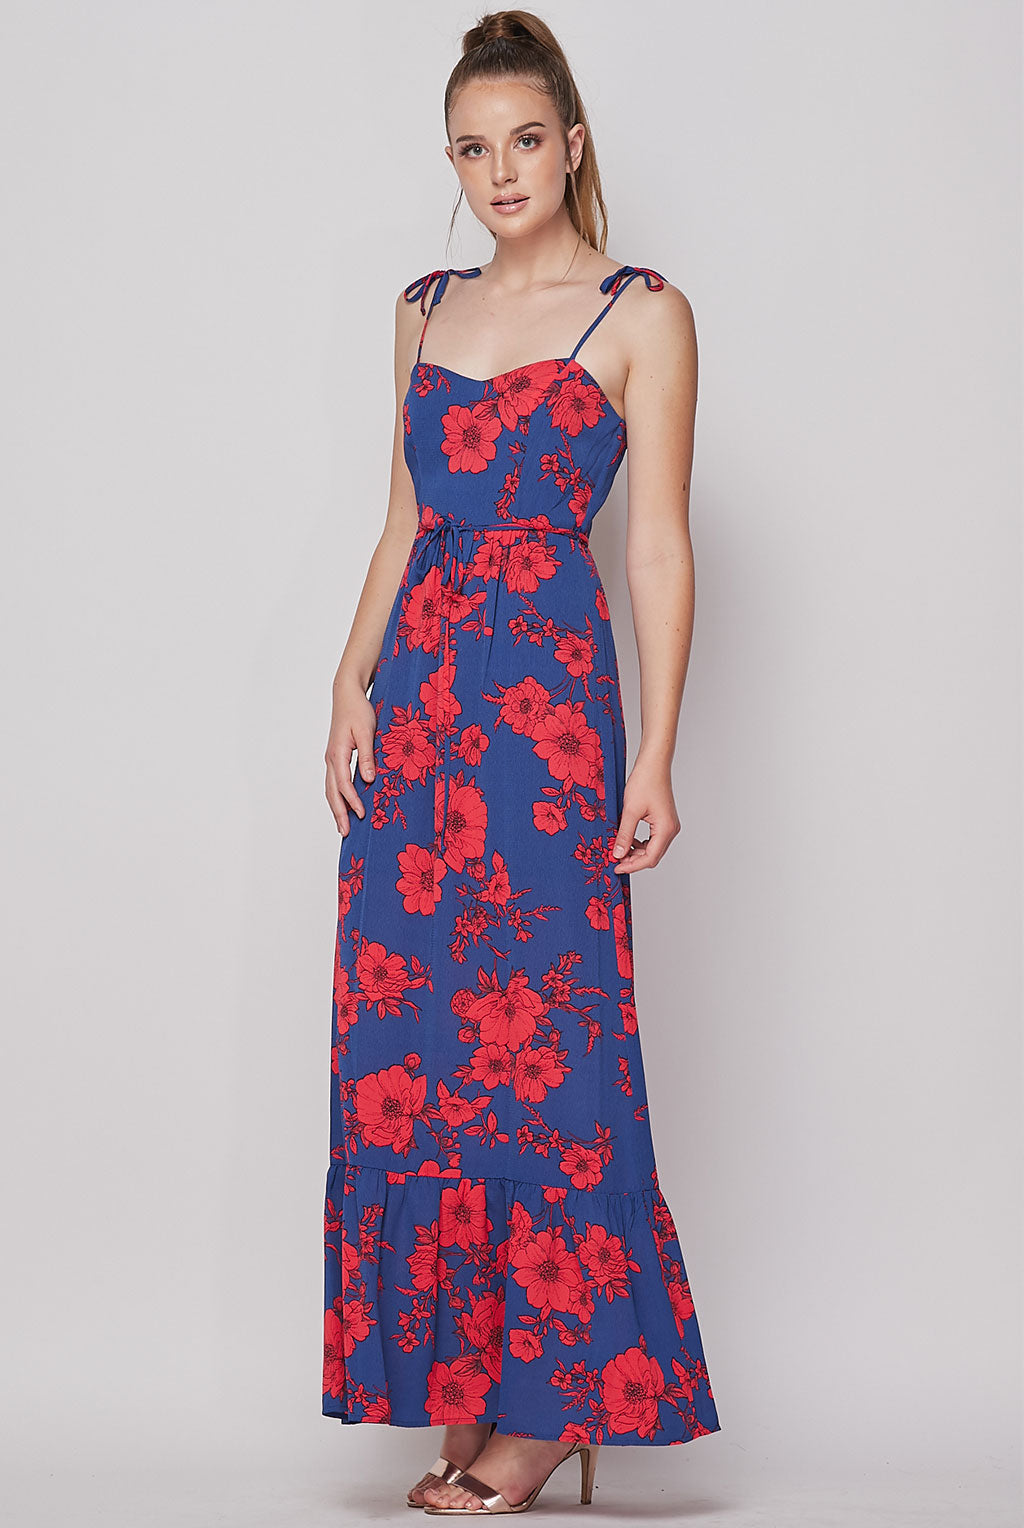 Teeze Me | Sleeveless Floral Printed Maxi Dress | Royal Red